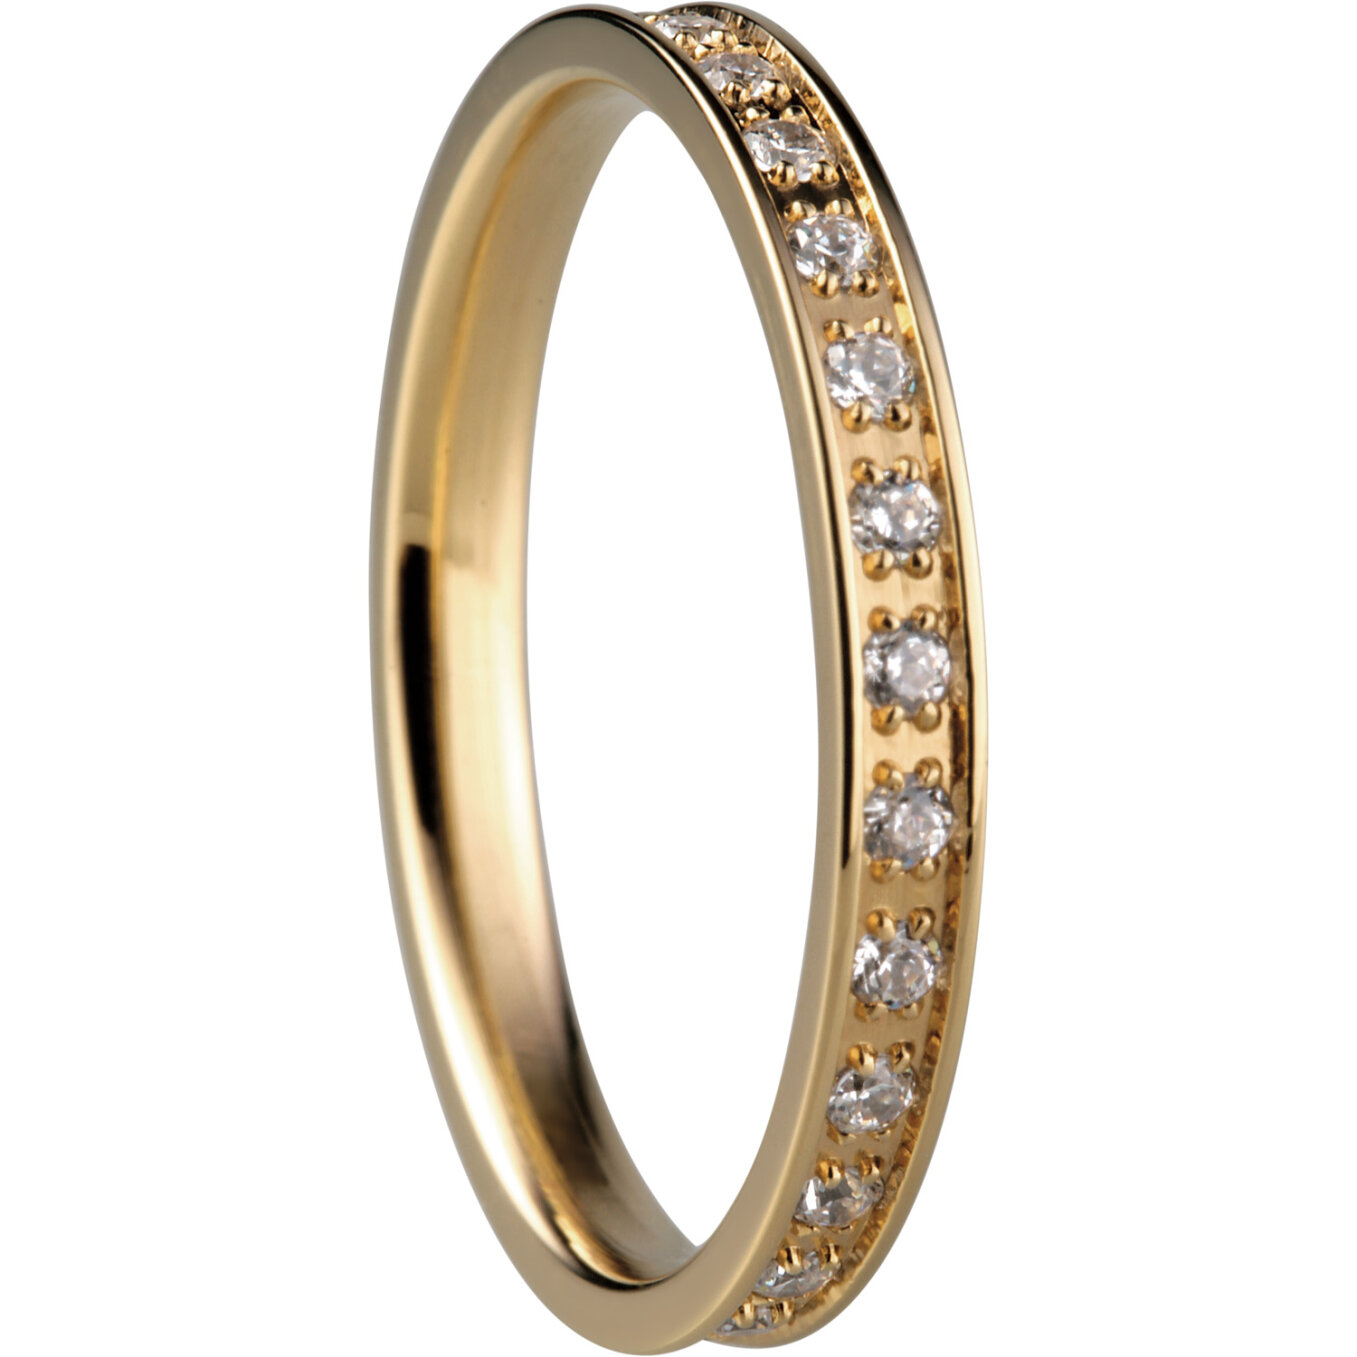 Bering Innenring 556-27-101 -Faith- gold